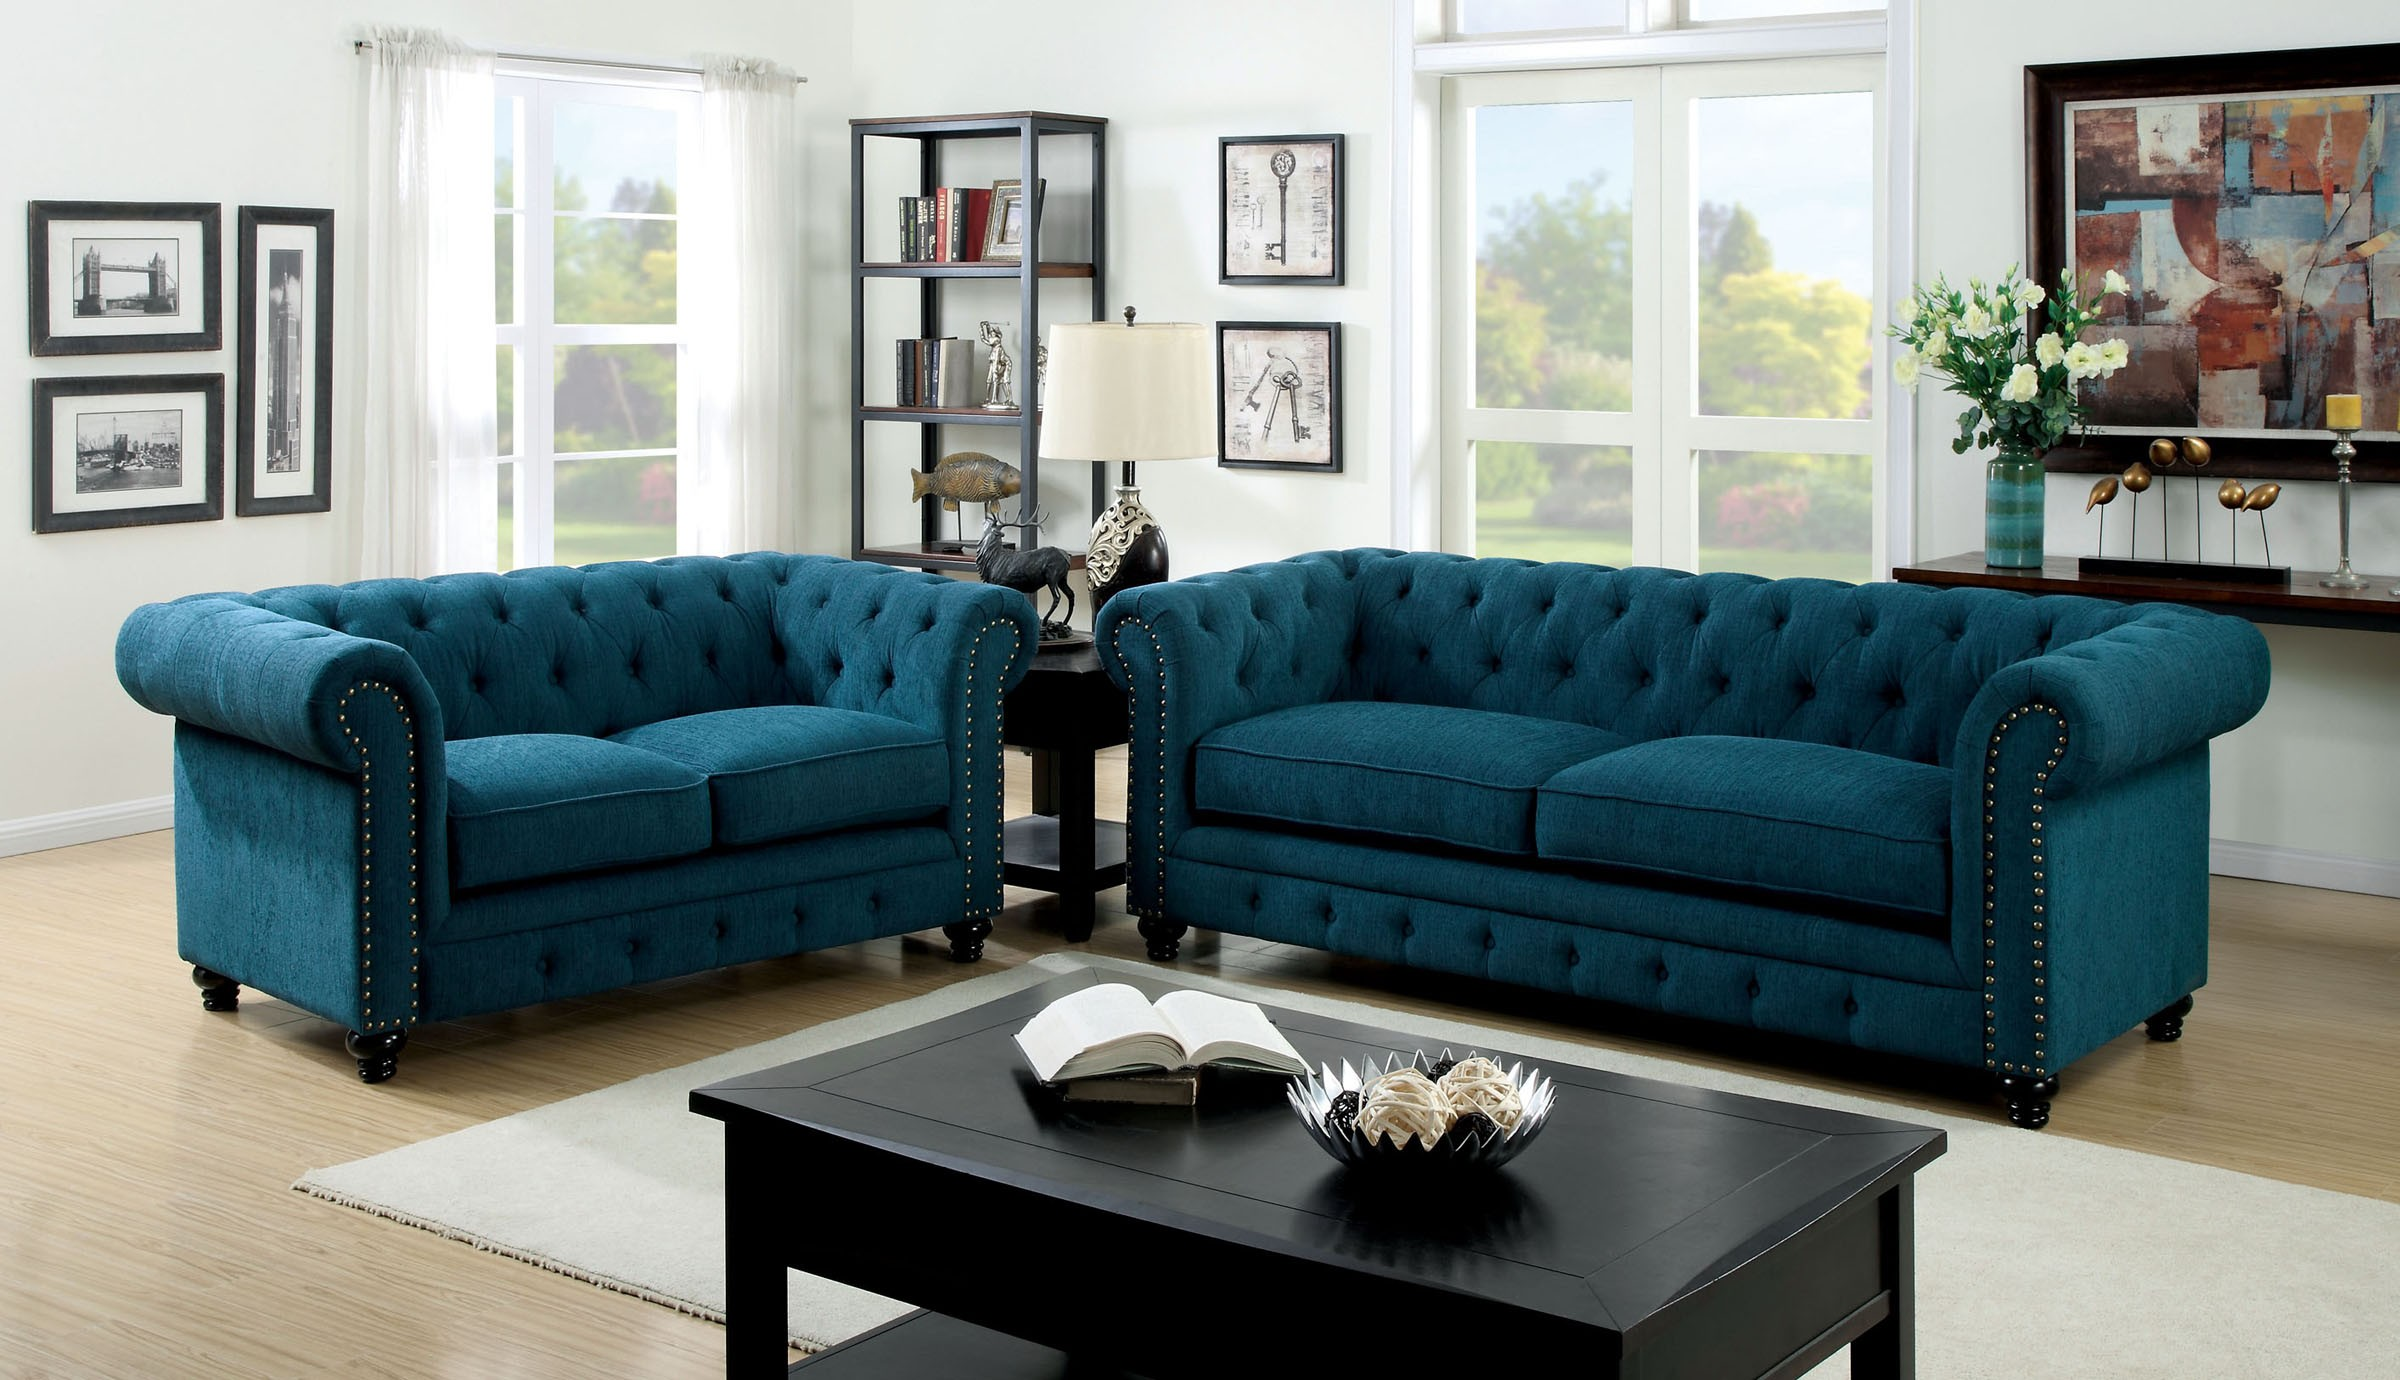 Stanford Dark Teal Fabric Living Room Set From Furniture Of America  (CM6269TL SF) | Coleman Furniture